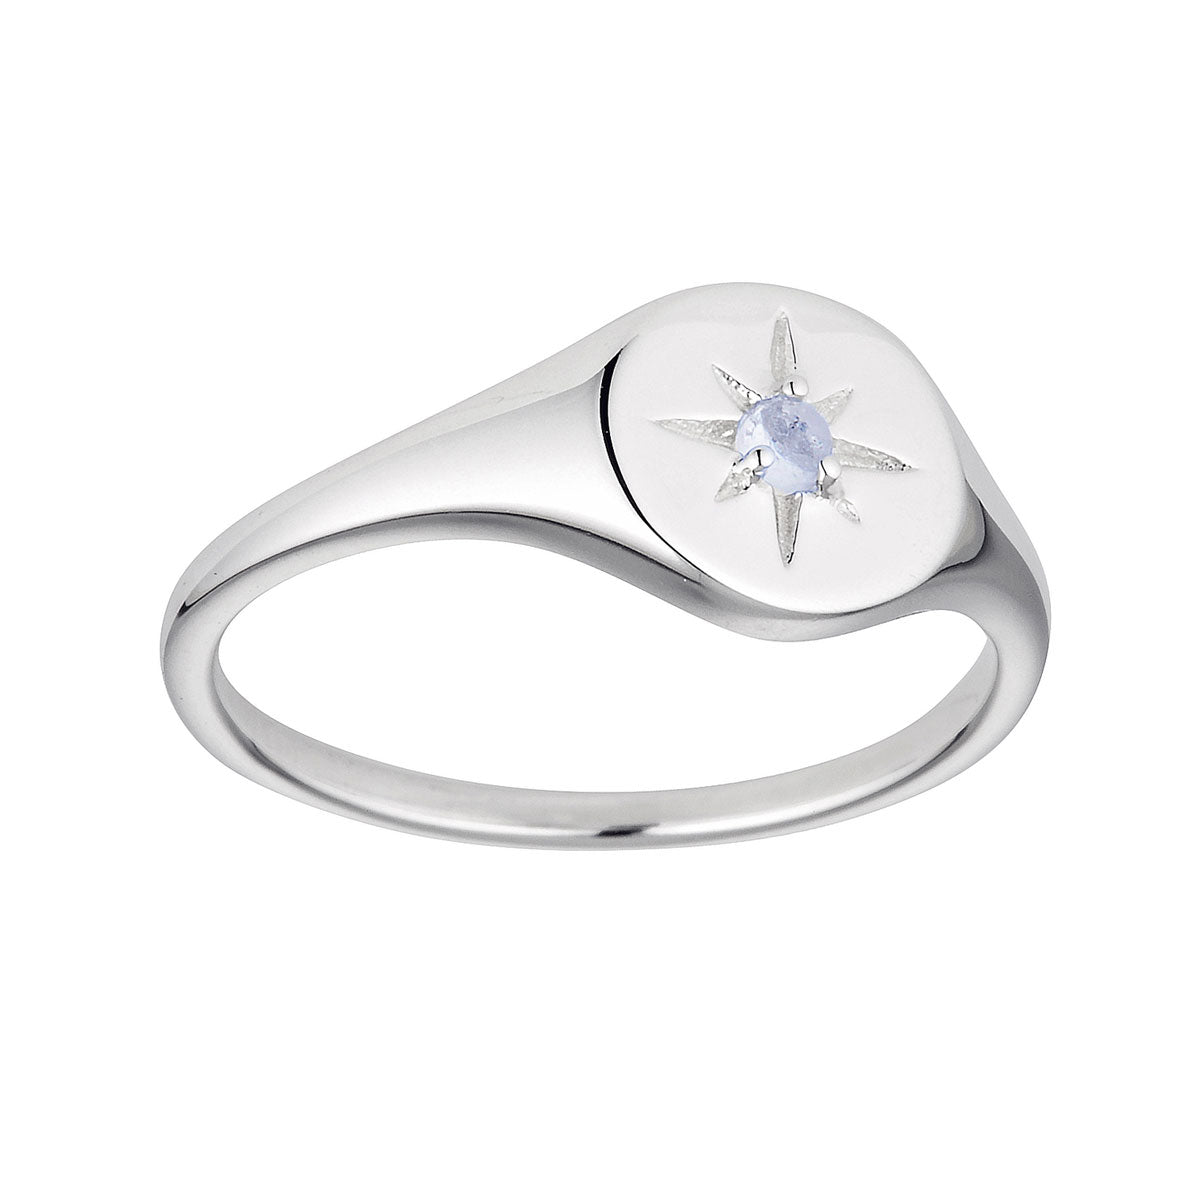 Delicate Enchanted Light Signet Ring